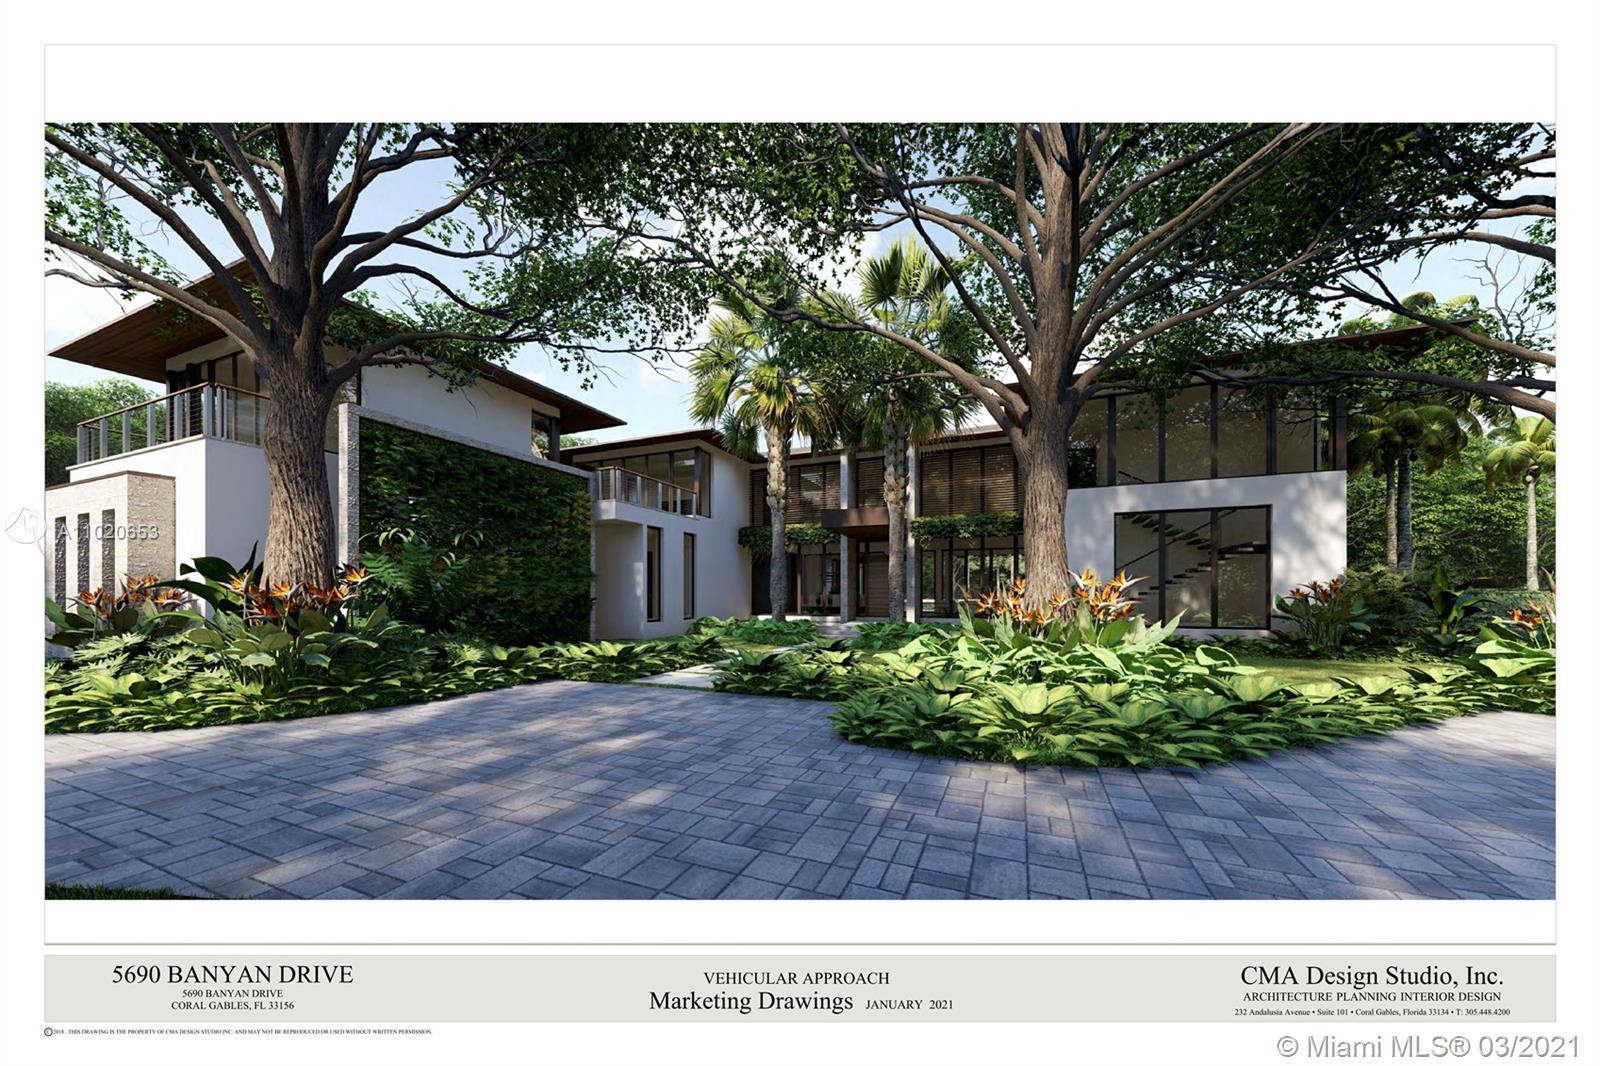 UNDER CONSTRUCTION - TO BE COMPLETED BY Q4 2021. Spectacular Home designed by Cesar Molina in Hammock Lakes II - a SOON TO BE Gated Community. This 7 bedroom, 7.5 bathroom home has over 7,000 SF under A/C and 11,200 Total SF, sitting on a beautiful lot with lush landscaping, elevator, swimming pool, a full separate guesthouse, wine cellar, and a beautiful Italian Kitchen with Wolf and Sub-Zero appliances. Within close proximity to the top schools, tropical parks, and many local hotspots. Sales associate is an affiliate of seller.